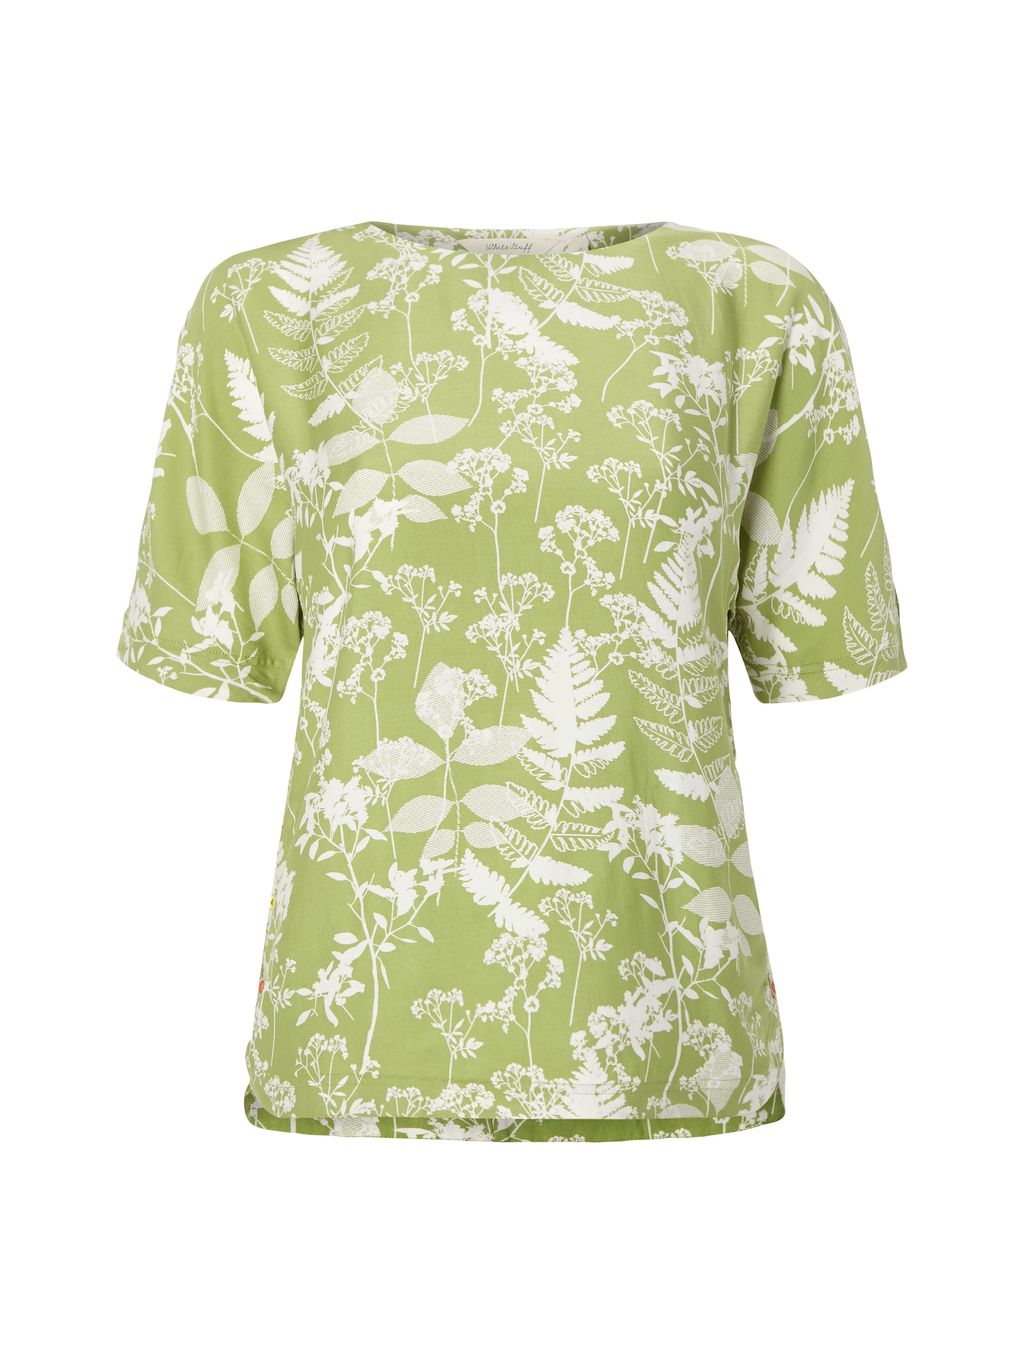 Chive Top, Green - neckline: round neck; predominant colour: lime; occasions: casual; length: standard; style: top; fit: body skimming; sleeve length: short sleeve; sleeve style: standard; pattern type: fabric; pattern: florals; texture group: jersey - stretchy/drapey; fibres: viscose/rayon - mix; pattern size: big & busy (top); season: s/s 2016; wardrobe: highlight